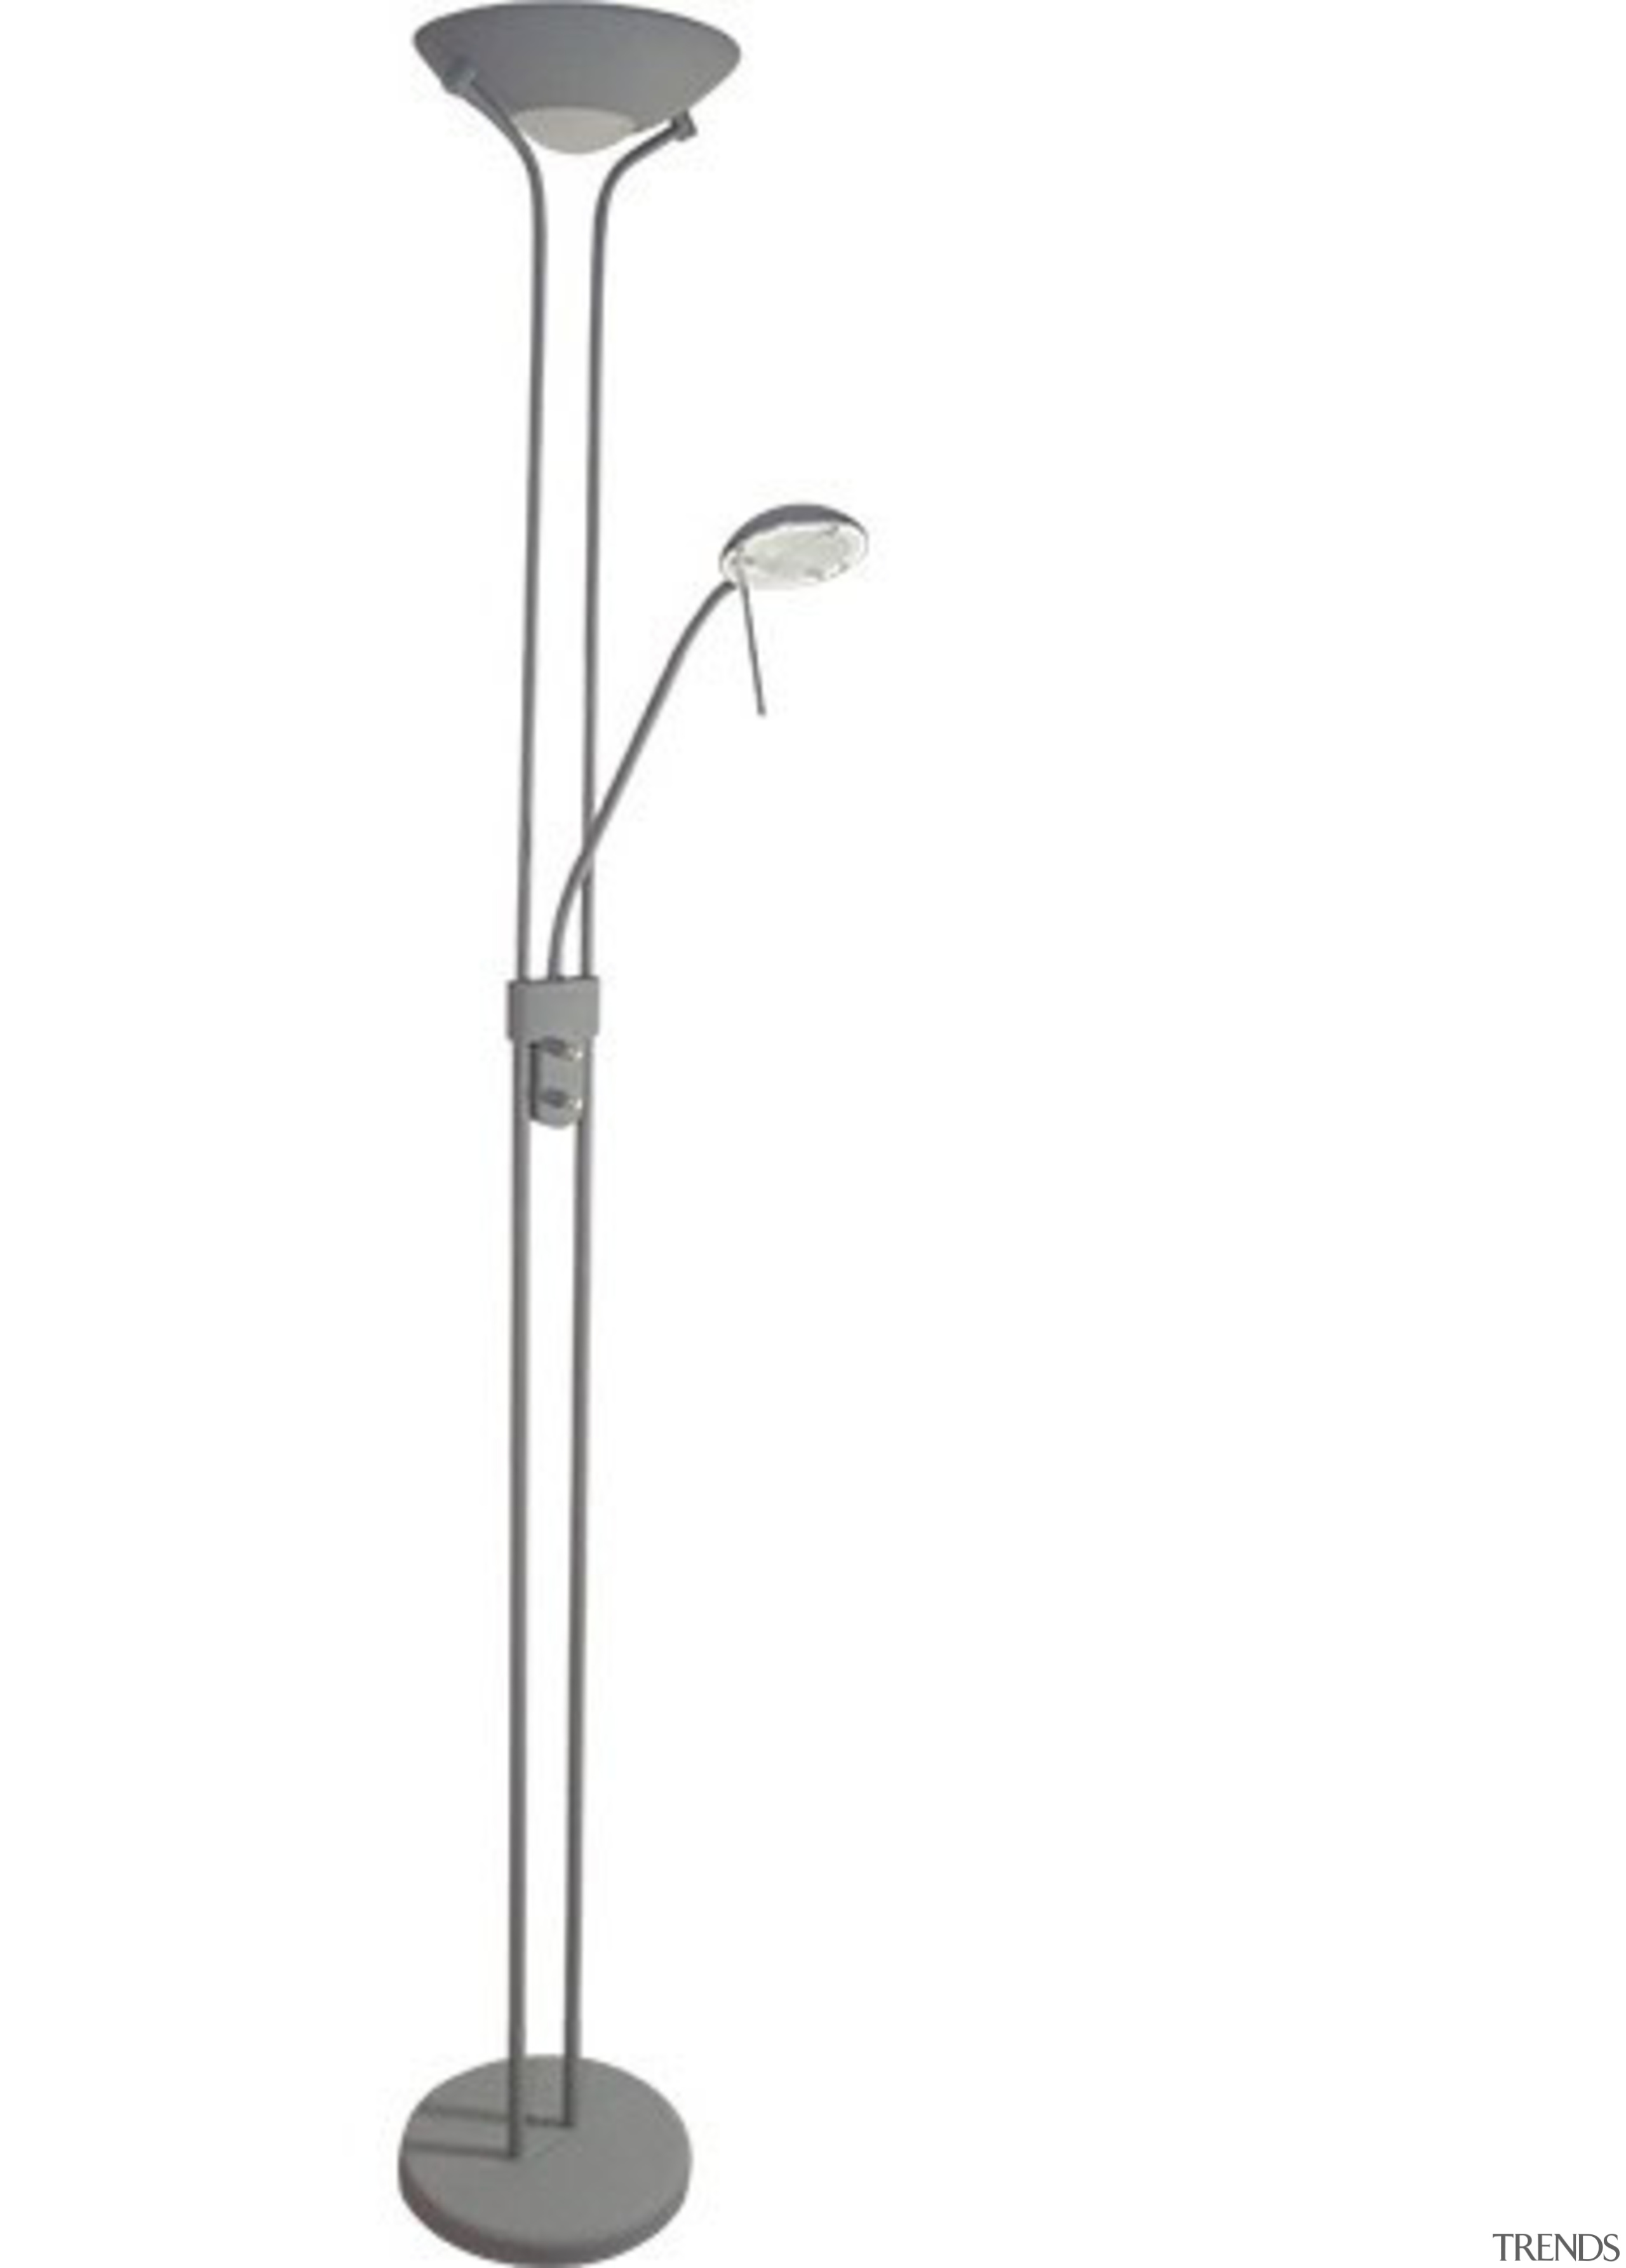 FeaturesThe sleekly designed Alena floor lamp features a light fixture, lighting, product design, white